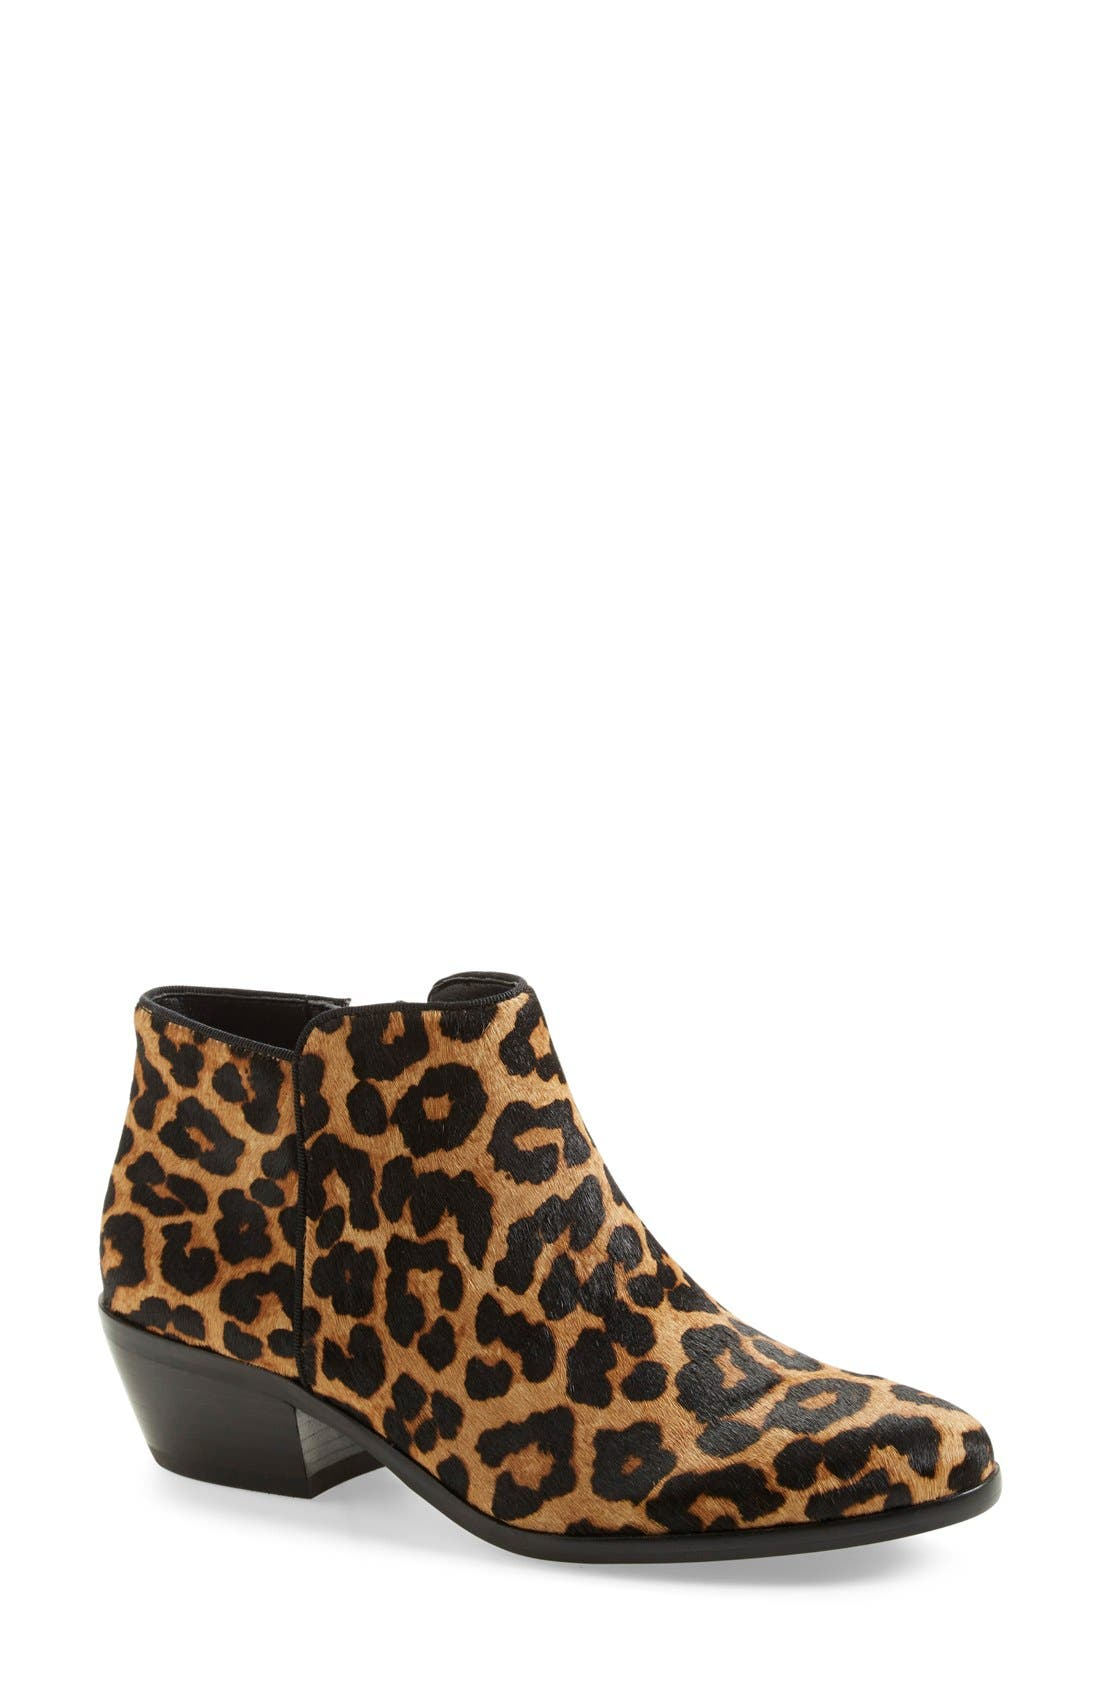 Main Image - Sam Edelman 'Petty' Bootie